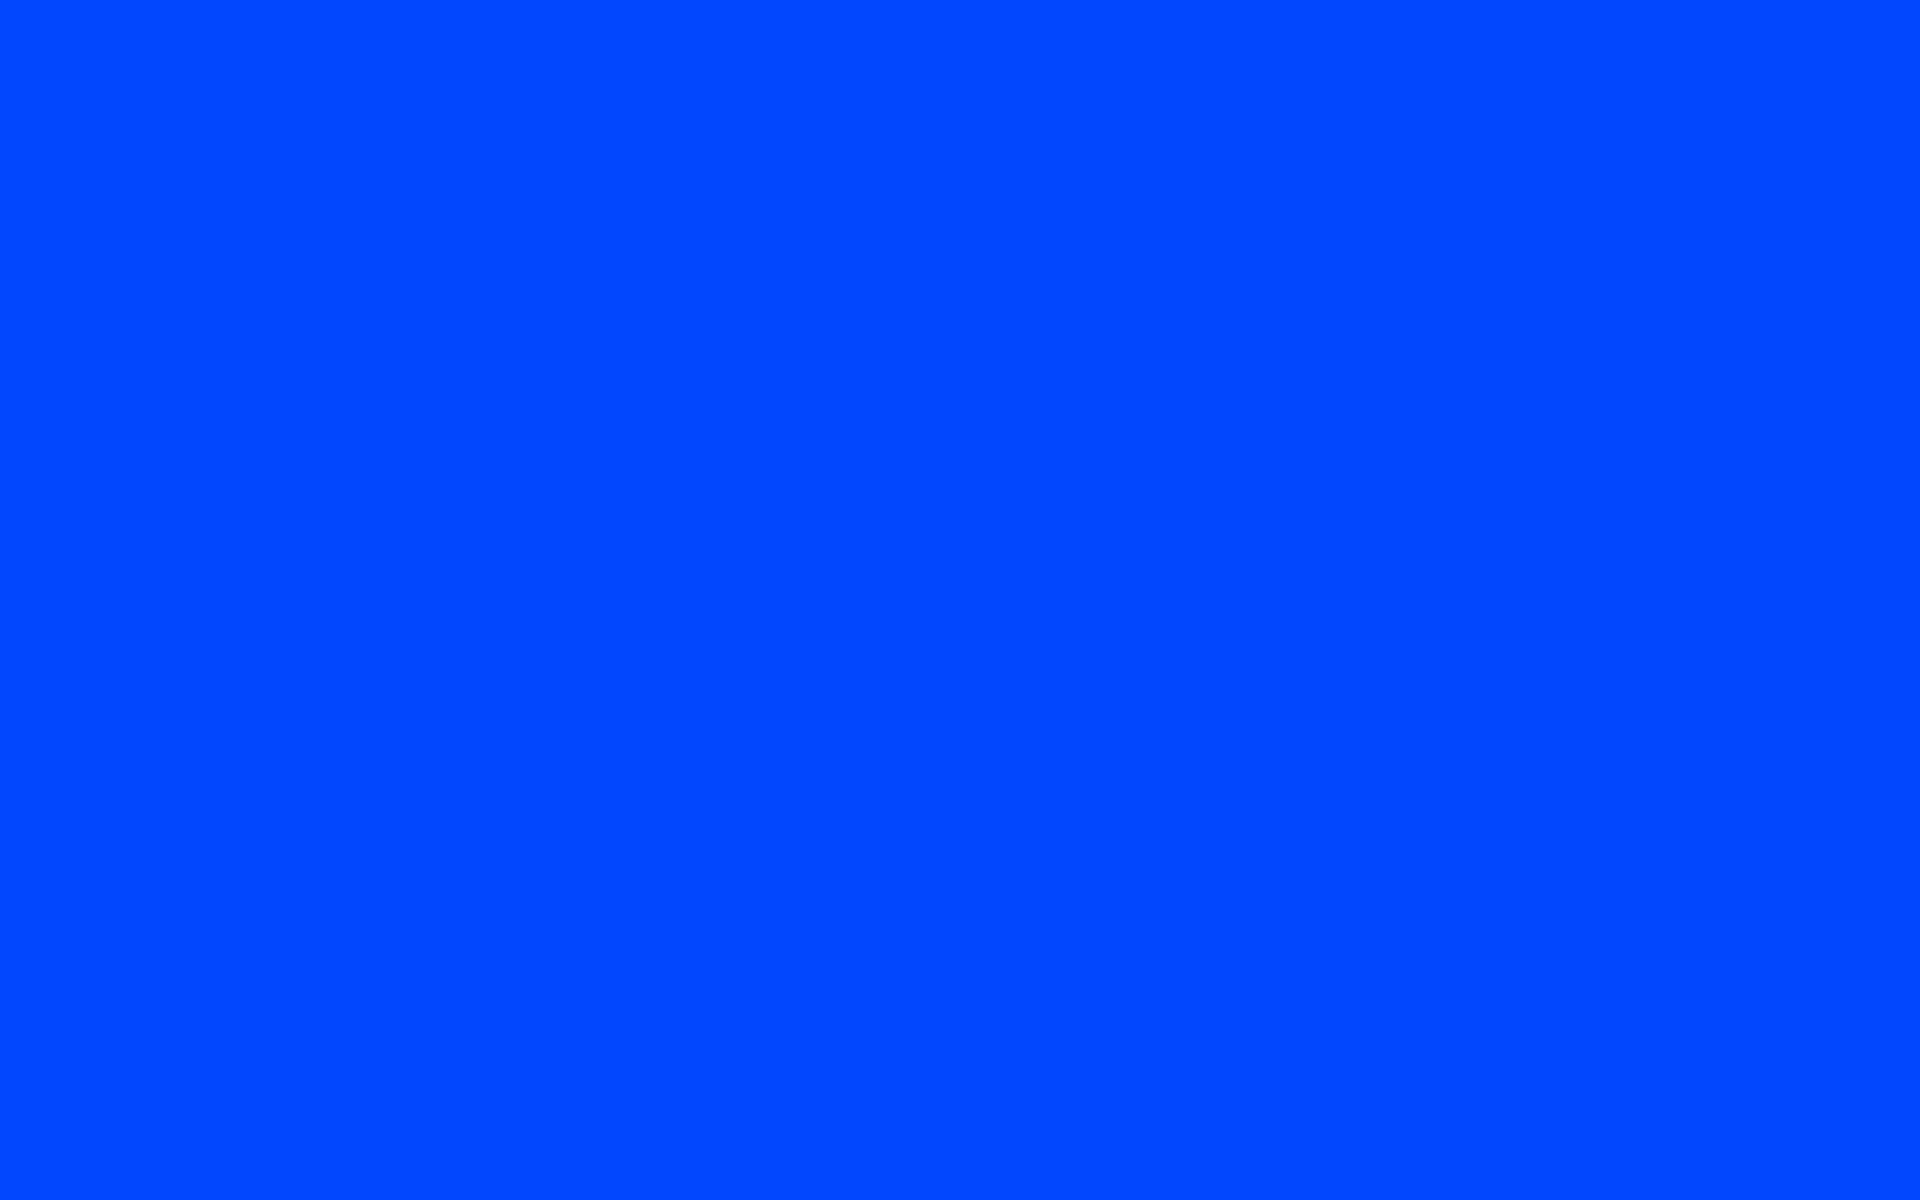 1920x1200 Blue RYB Solid Color Background